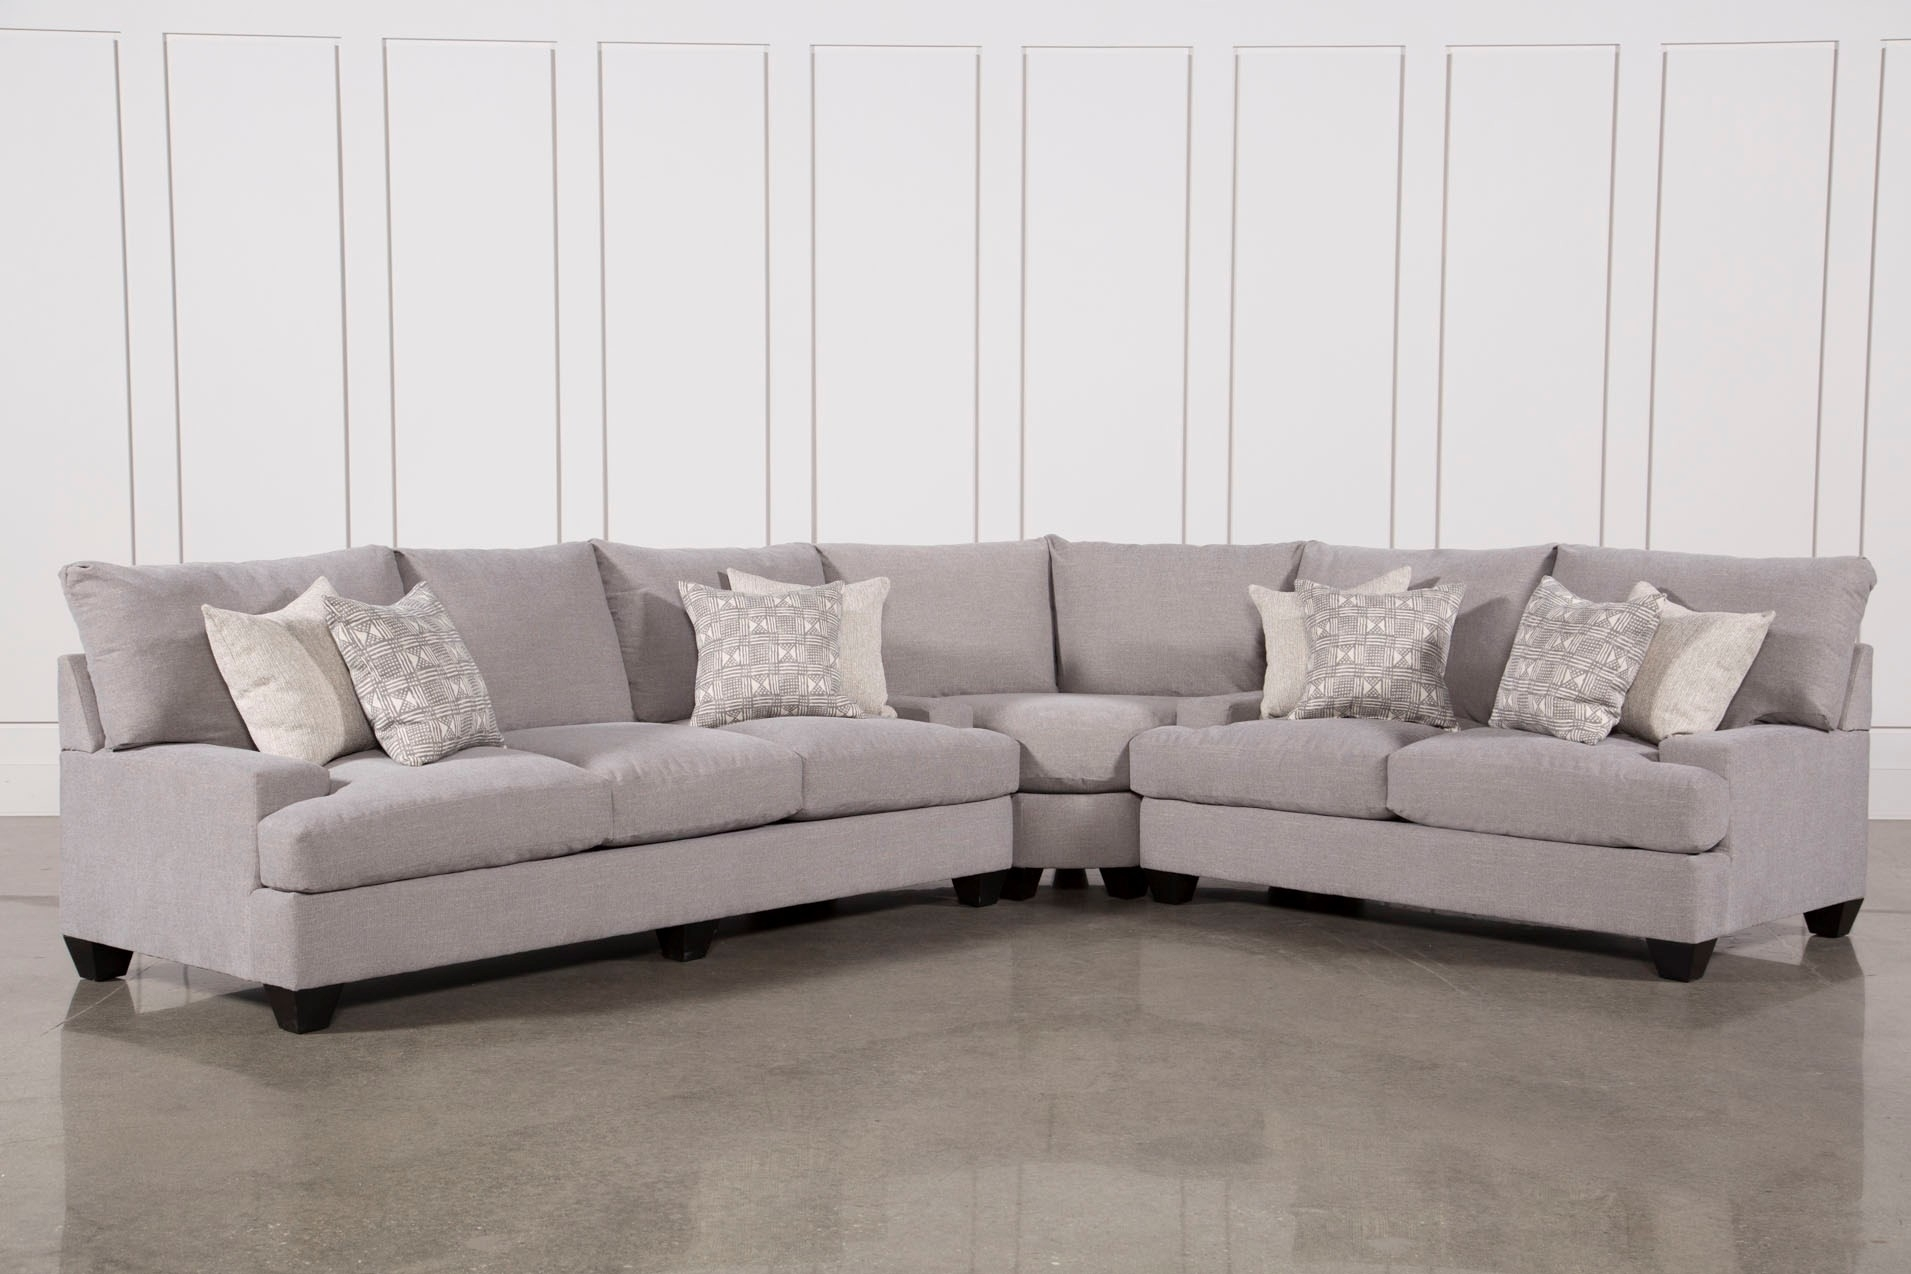 Living Spaces Sectional Aurora 2 Piece 90315 0 Jpg W 1911 H 1288 In Aurora 2 Piece Sectionals (Image 16 of 25)